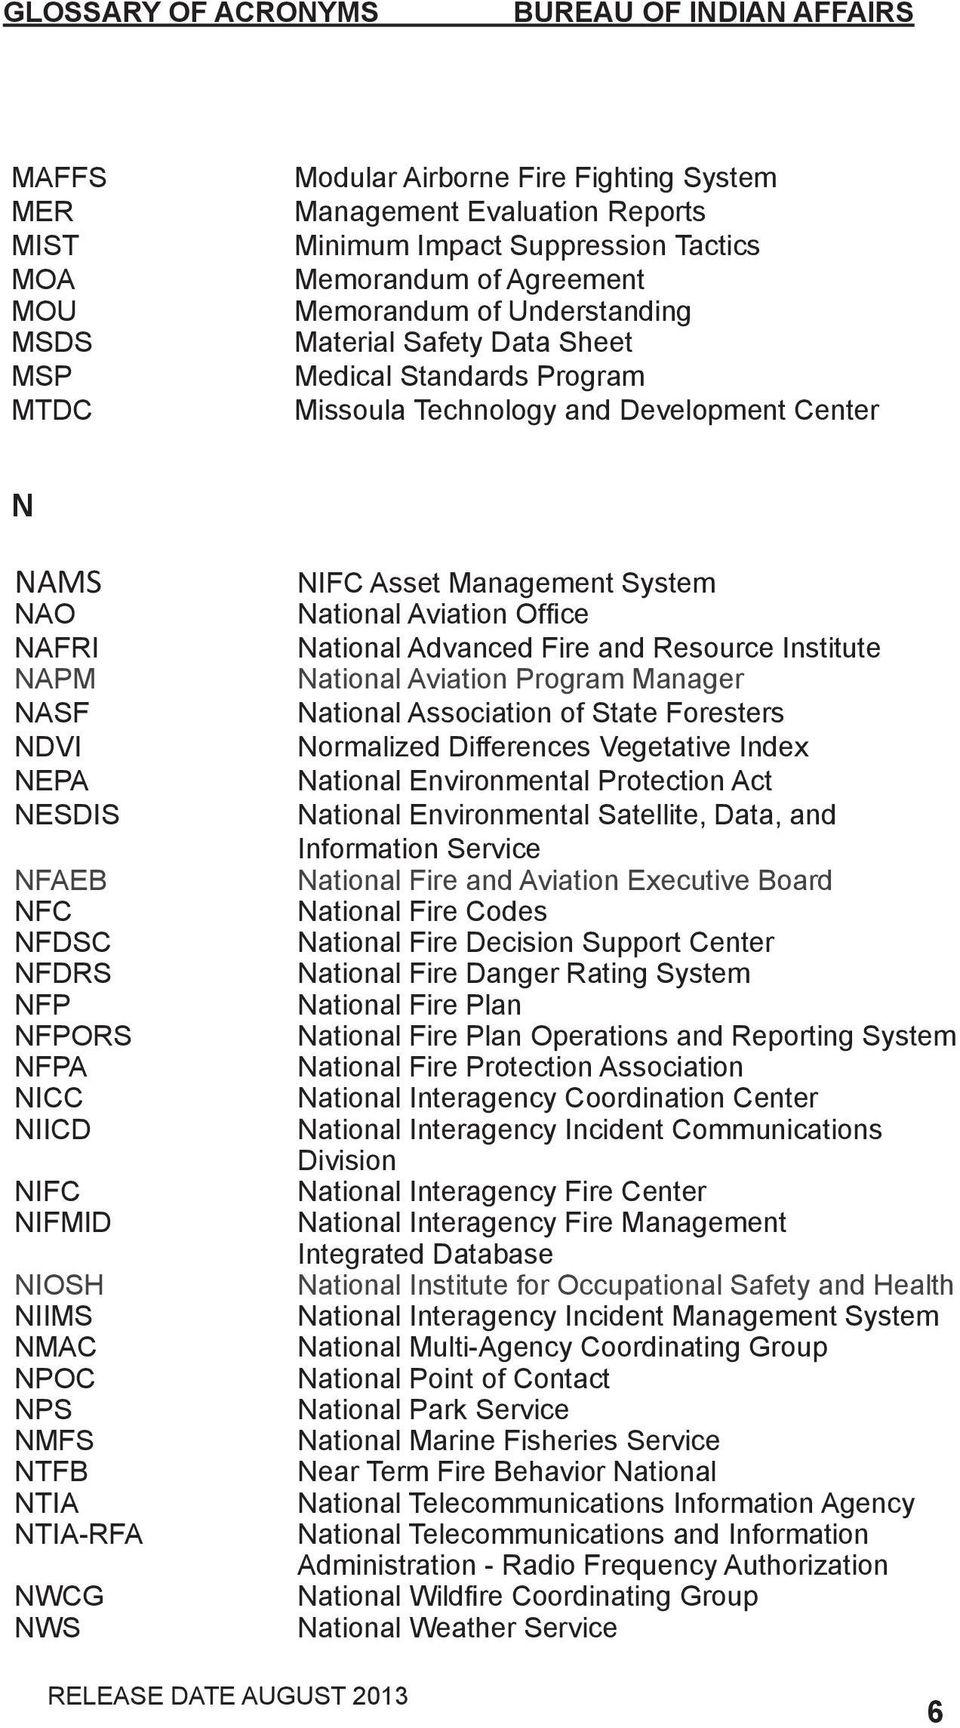 NIFMID NIOSH NIIMS NMAC NPOC NPS NMFS NTFB NTIA NTIA-RFA NWCG NWS NIFC Asset Management System National Aviation Office National Advanced Fire and Resource Institute National Aviation Program Manager